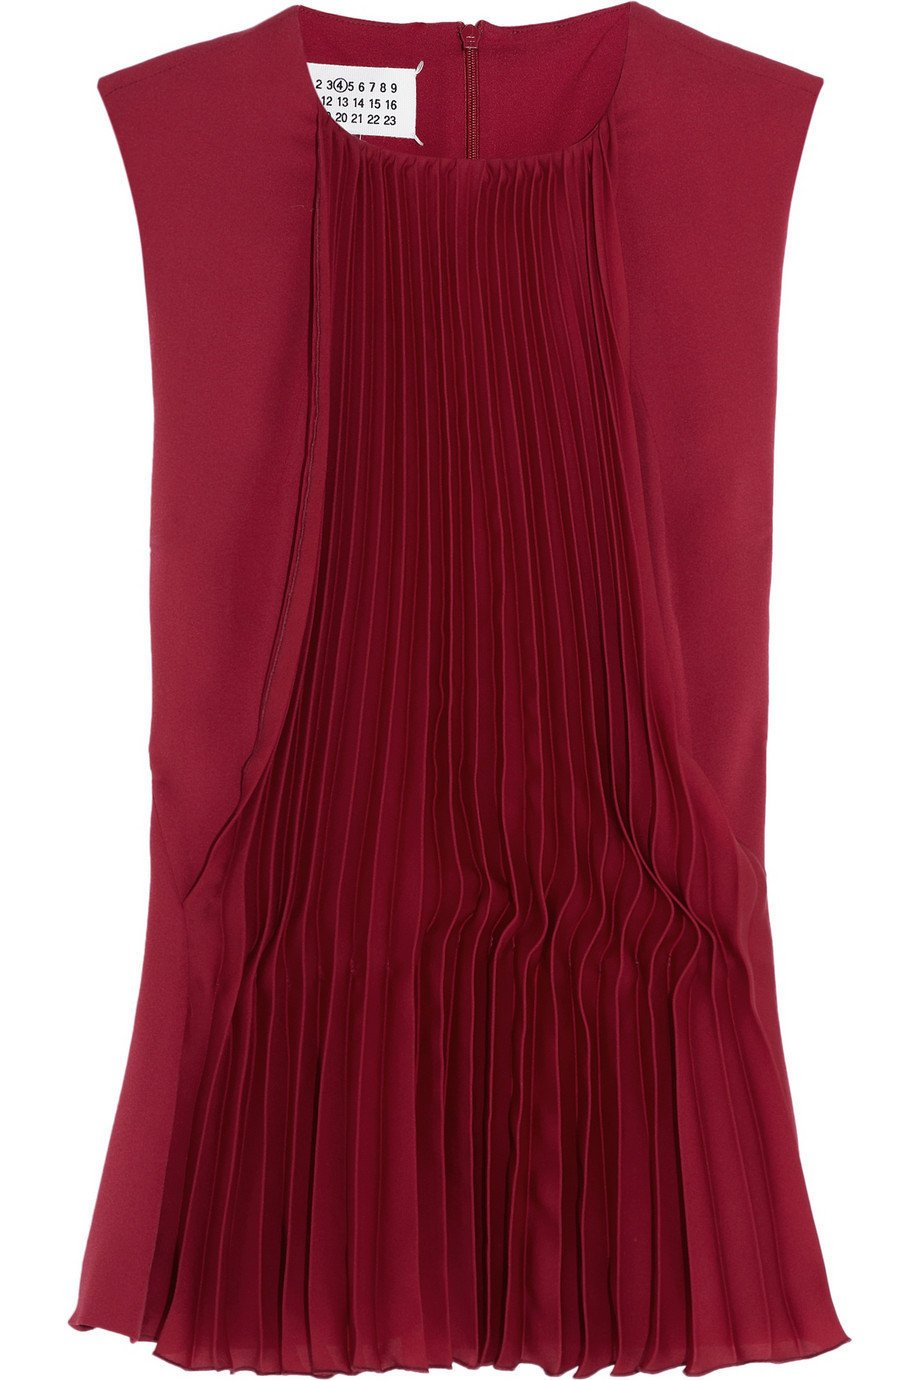 Maison Martin Margiela | Pleated crepe and silk top | NET-A-PORTER.COM